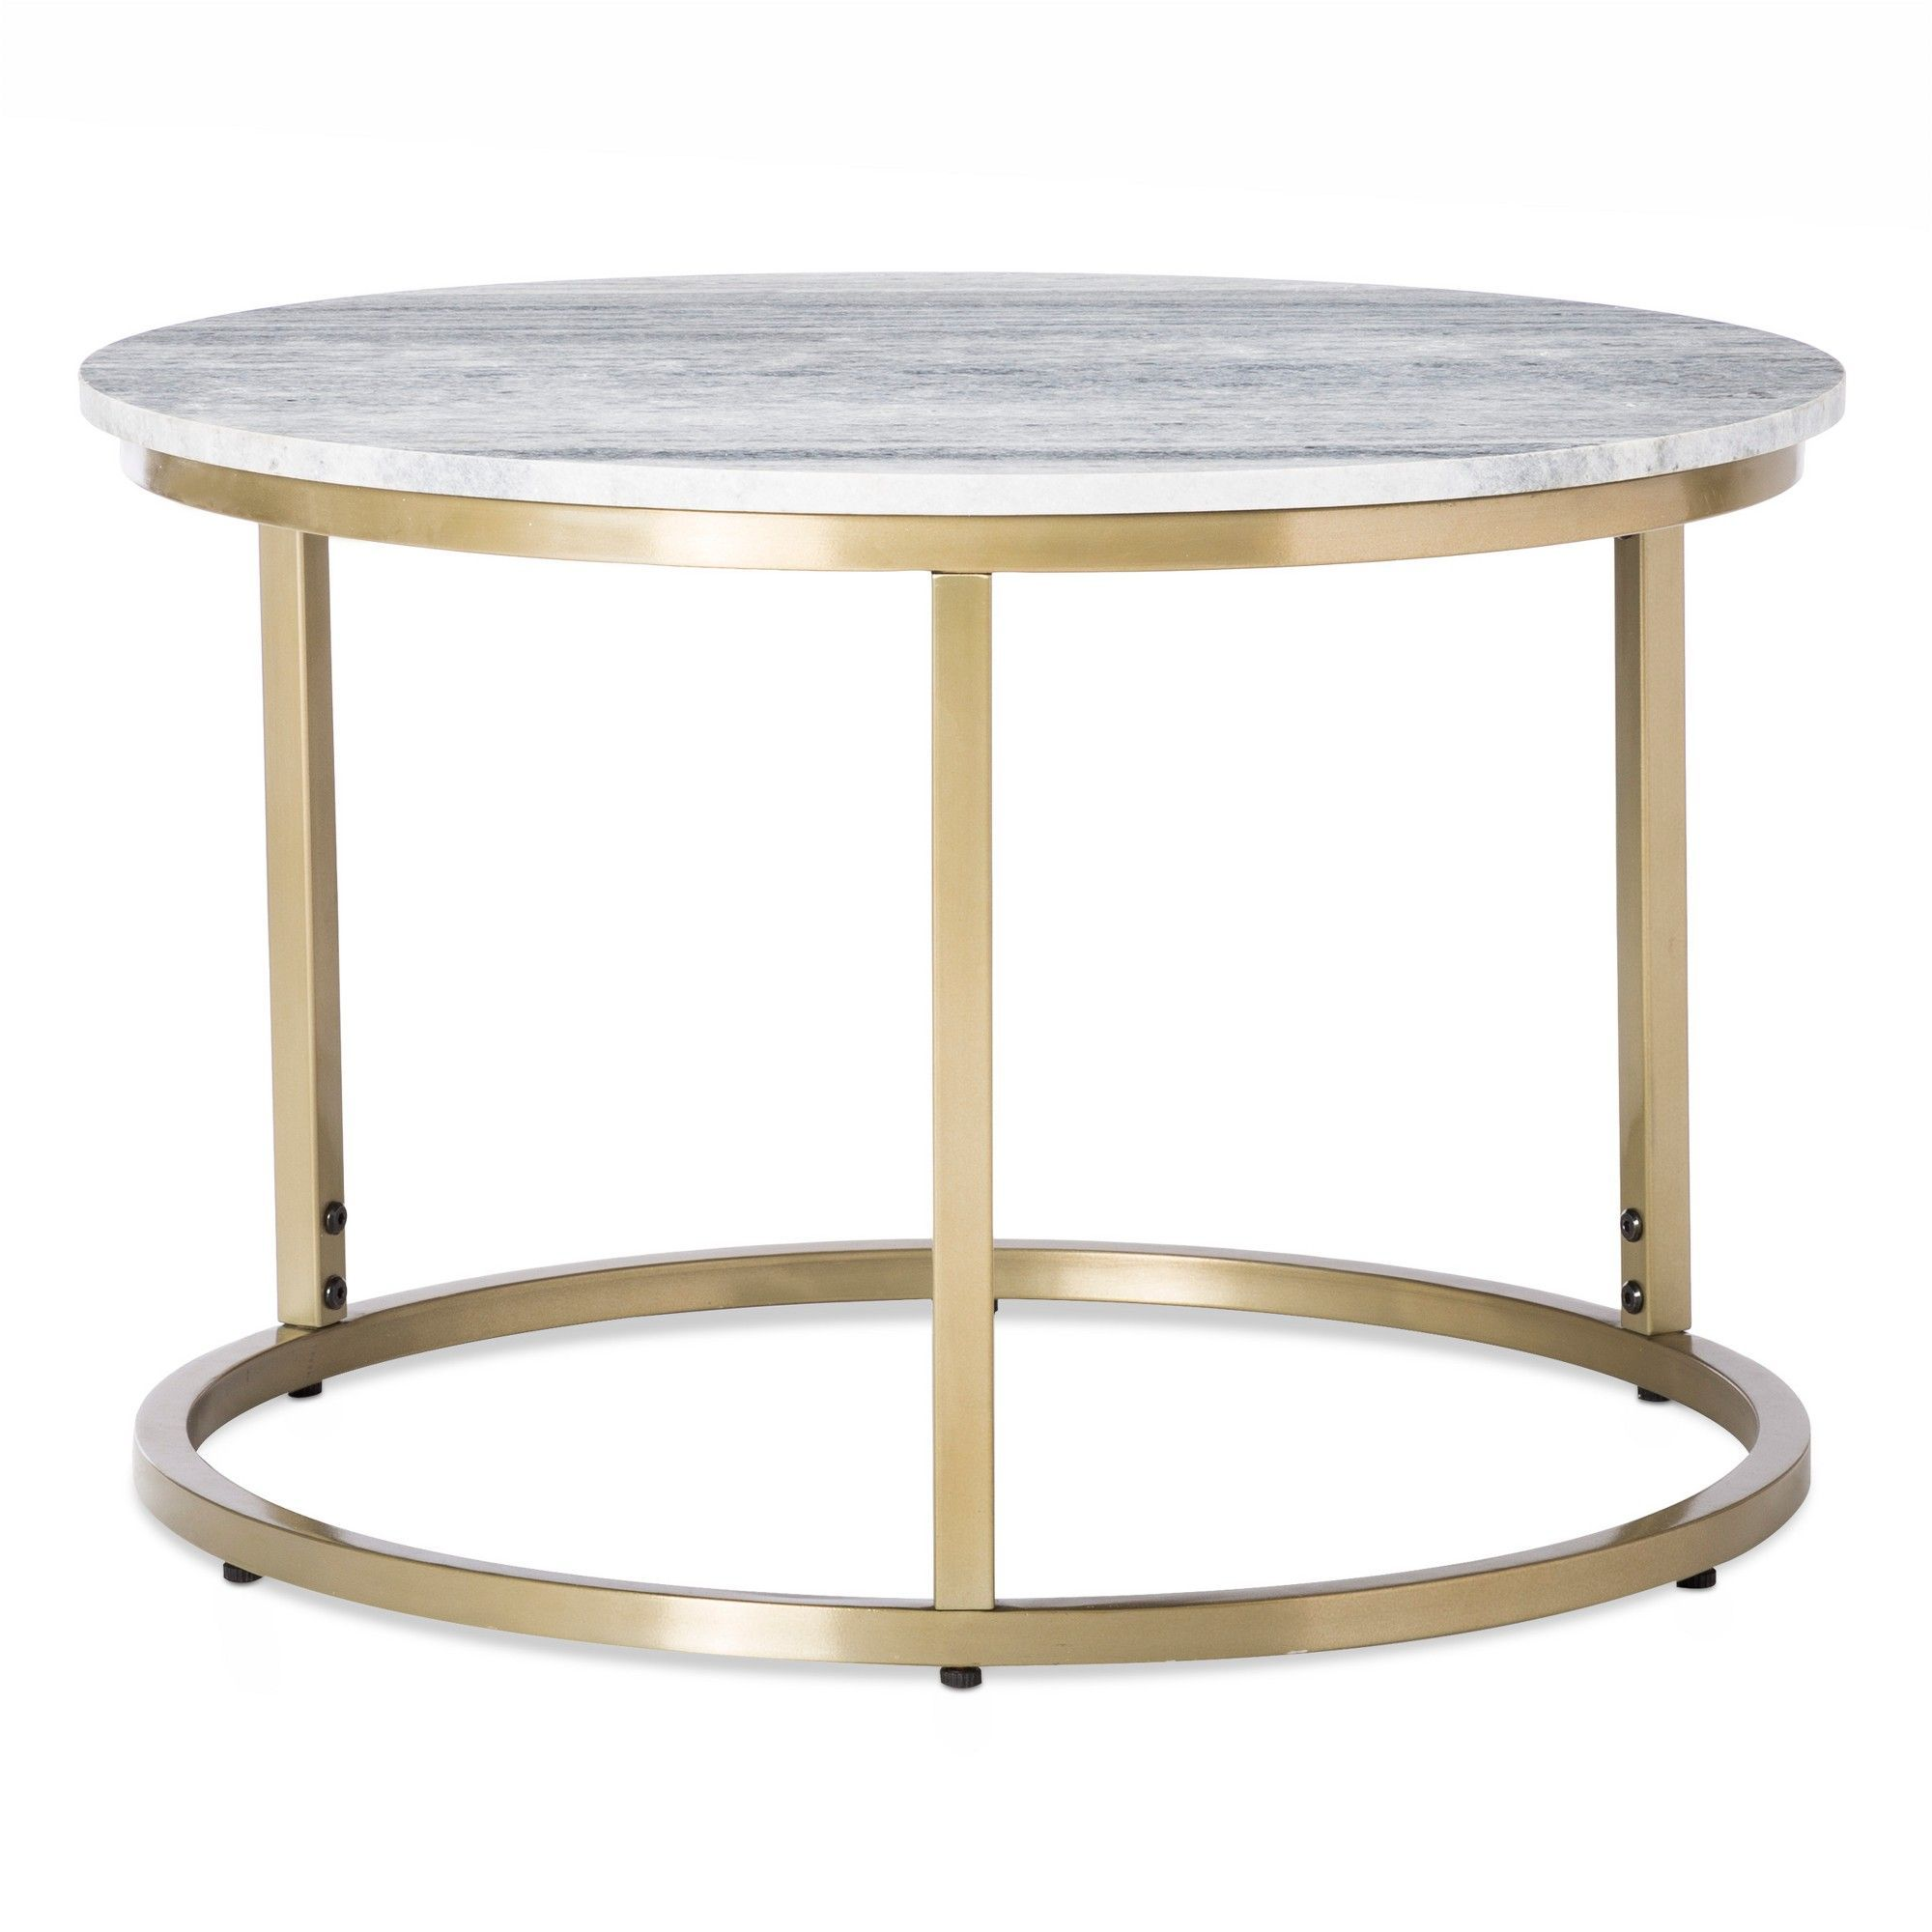 small marble top coffee table gold threshold products accent wipe clean tablecloth upcycled desk wood and iron sets carolina furniture patio tray target ikea round end tall drum